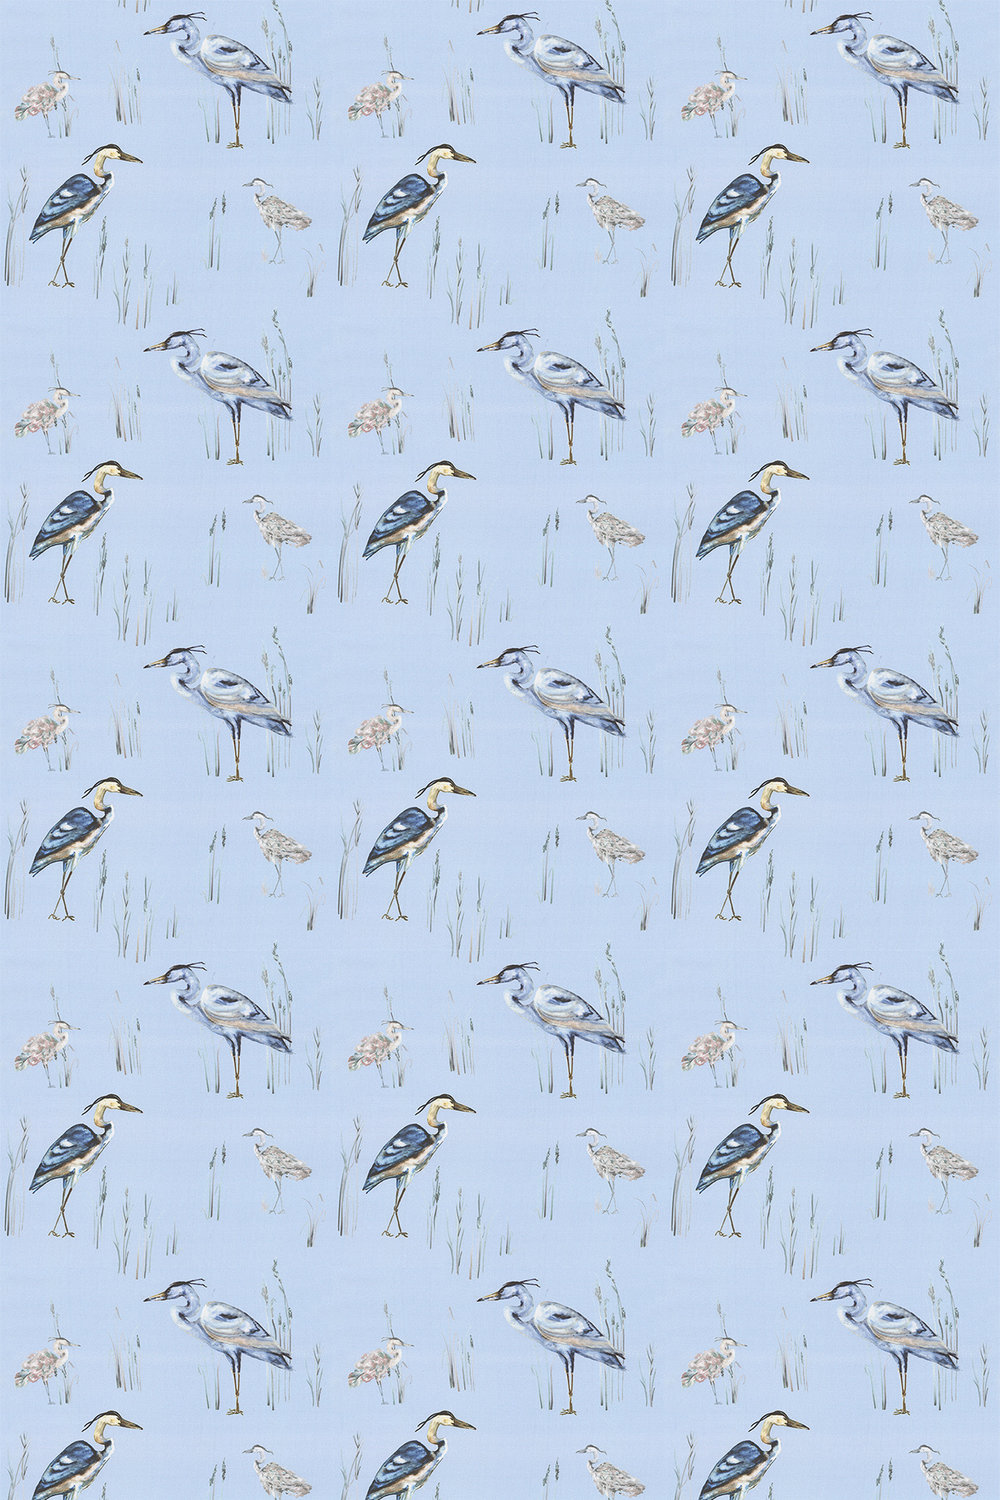 Herons Fabric - Riviera - by iliv